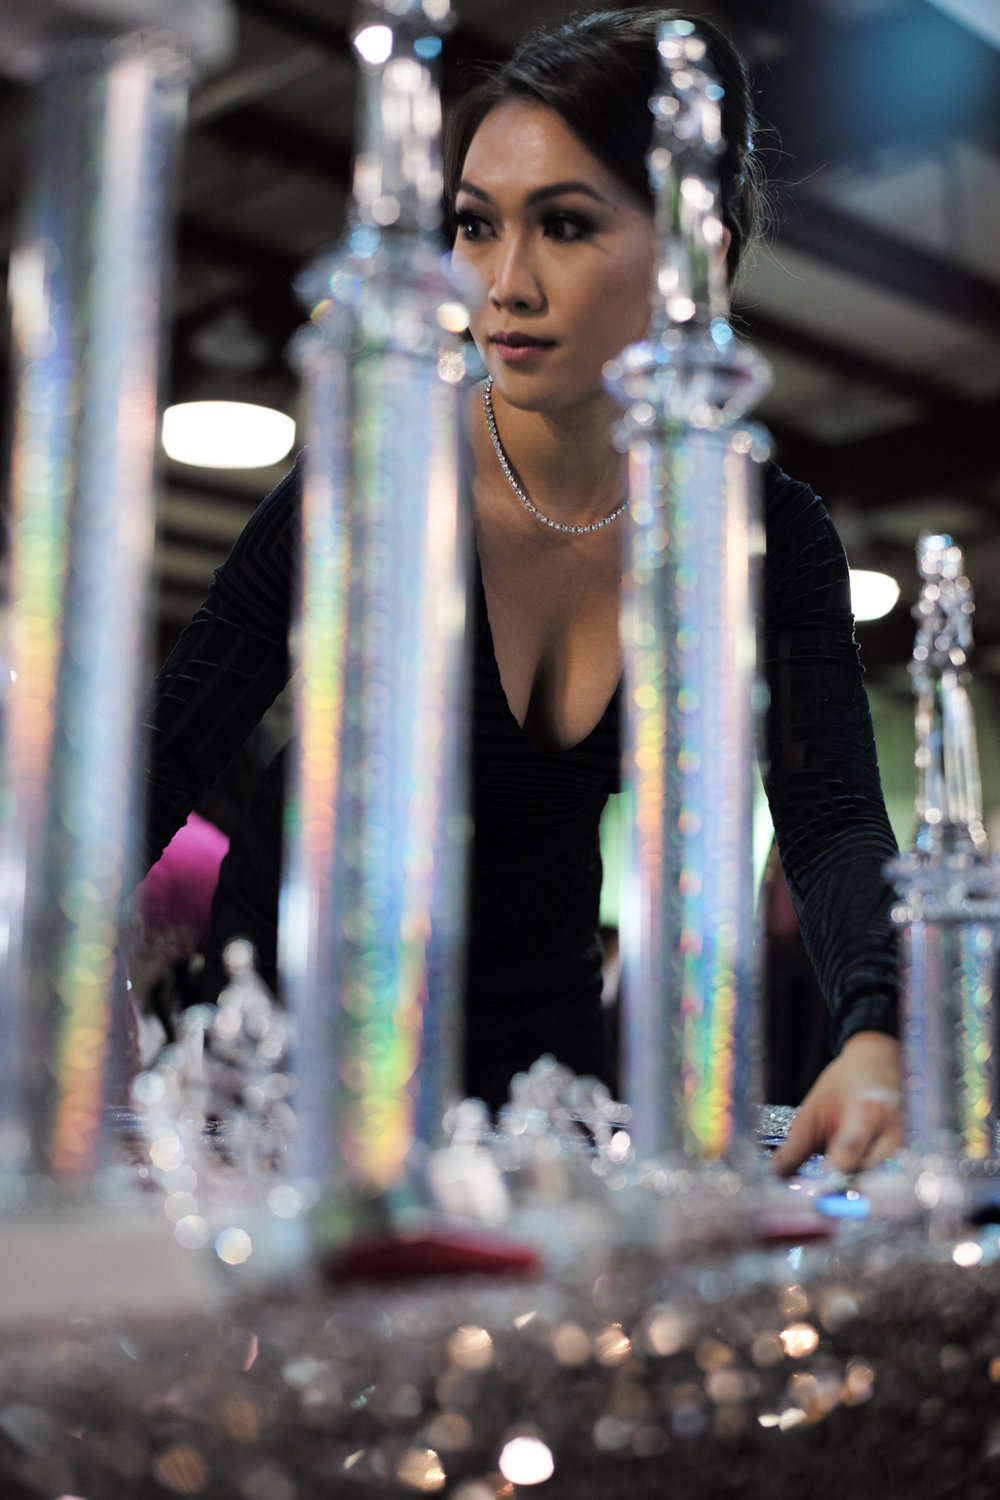 Bao Anh Do, Miss Vietnam Florida 2010, arranges the crown and trophies for the next Royal Court of 2018.